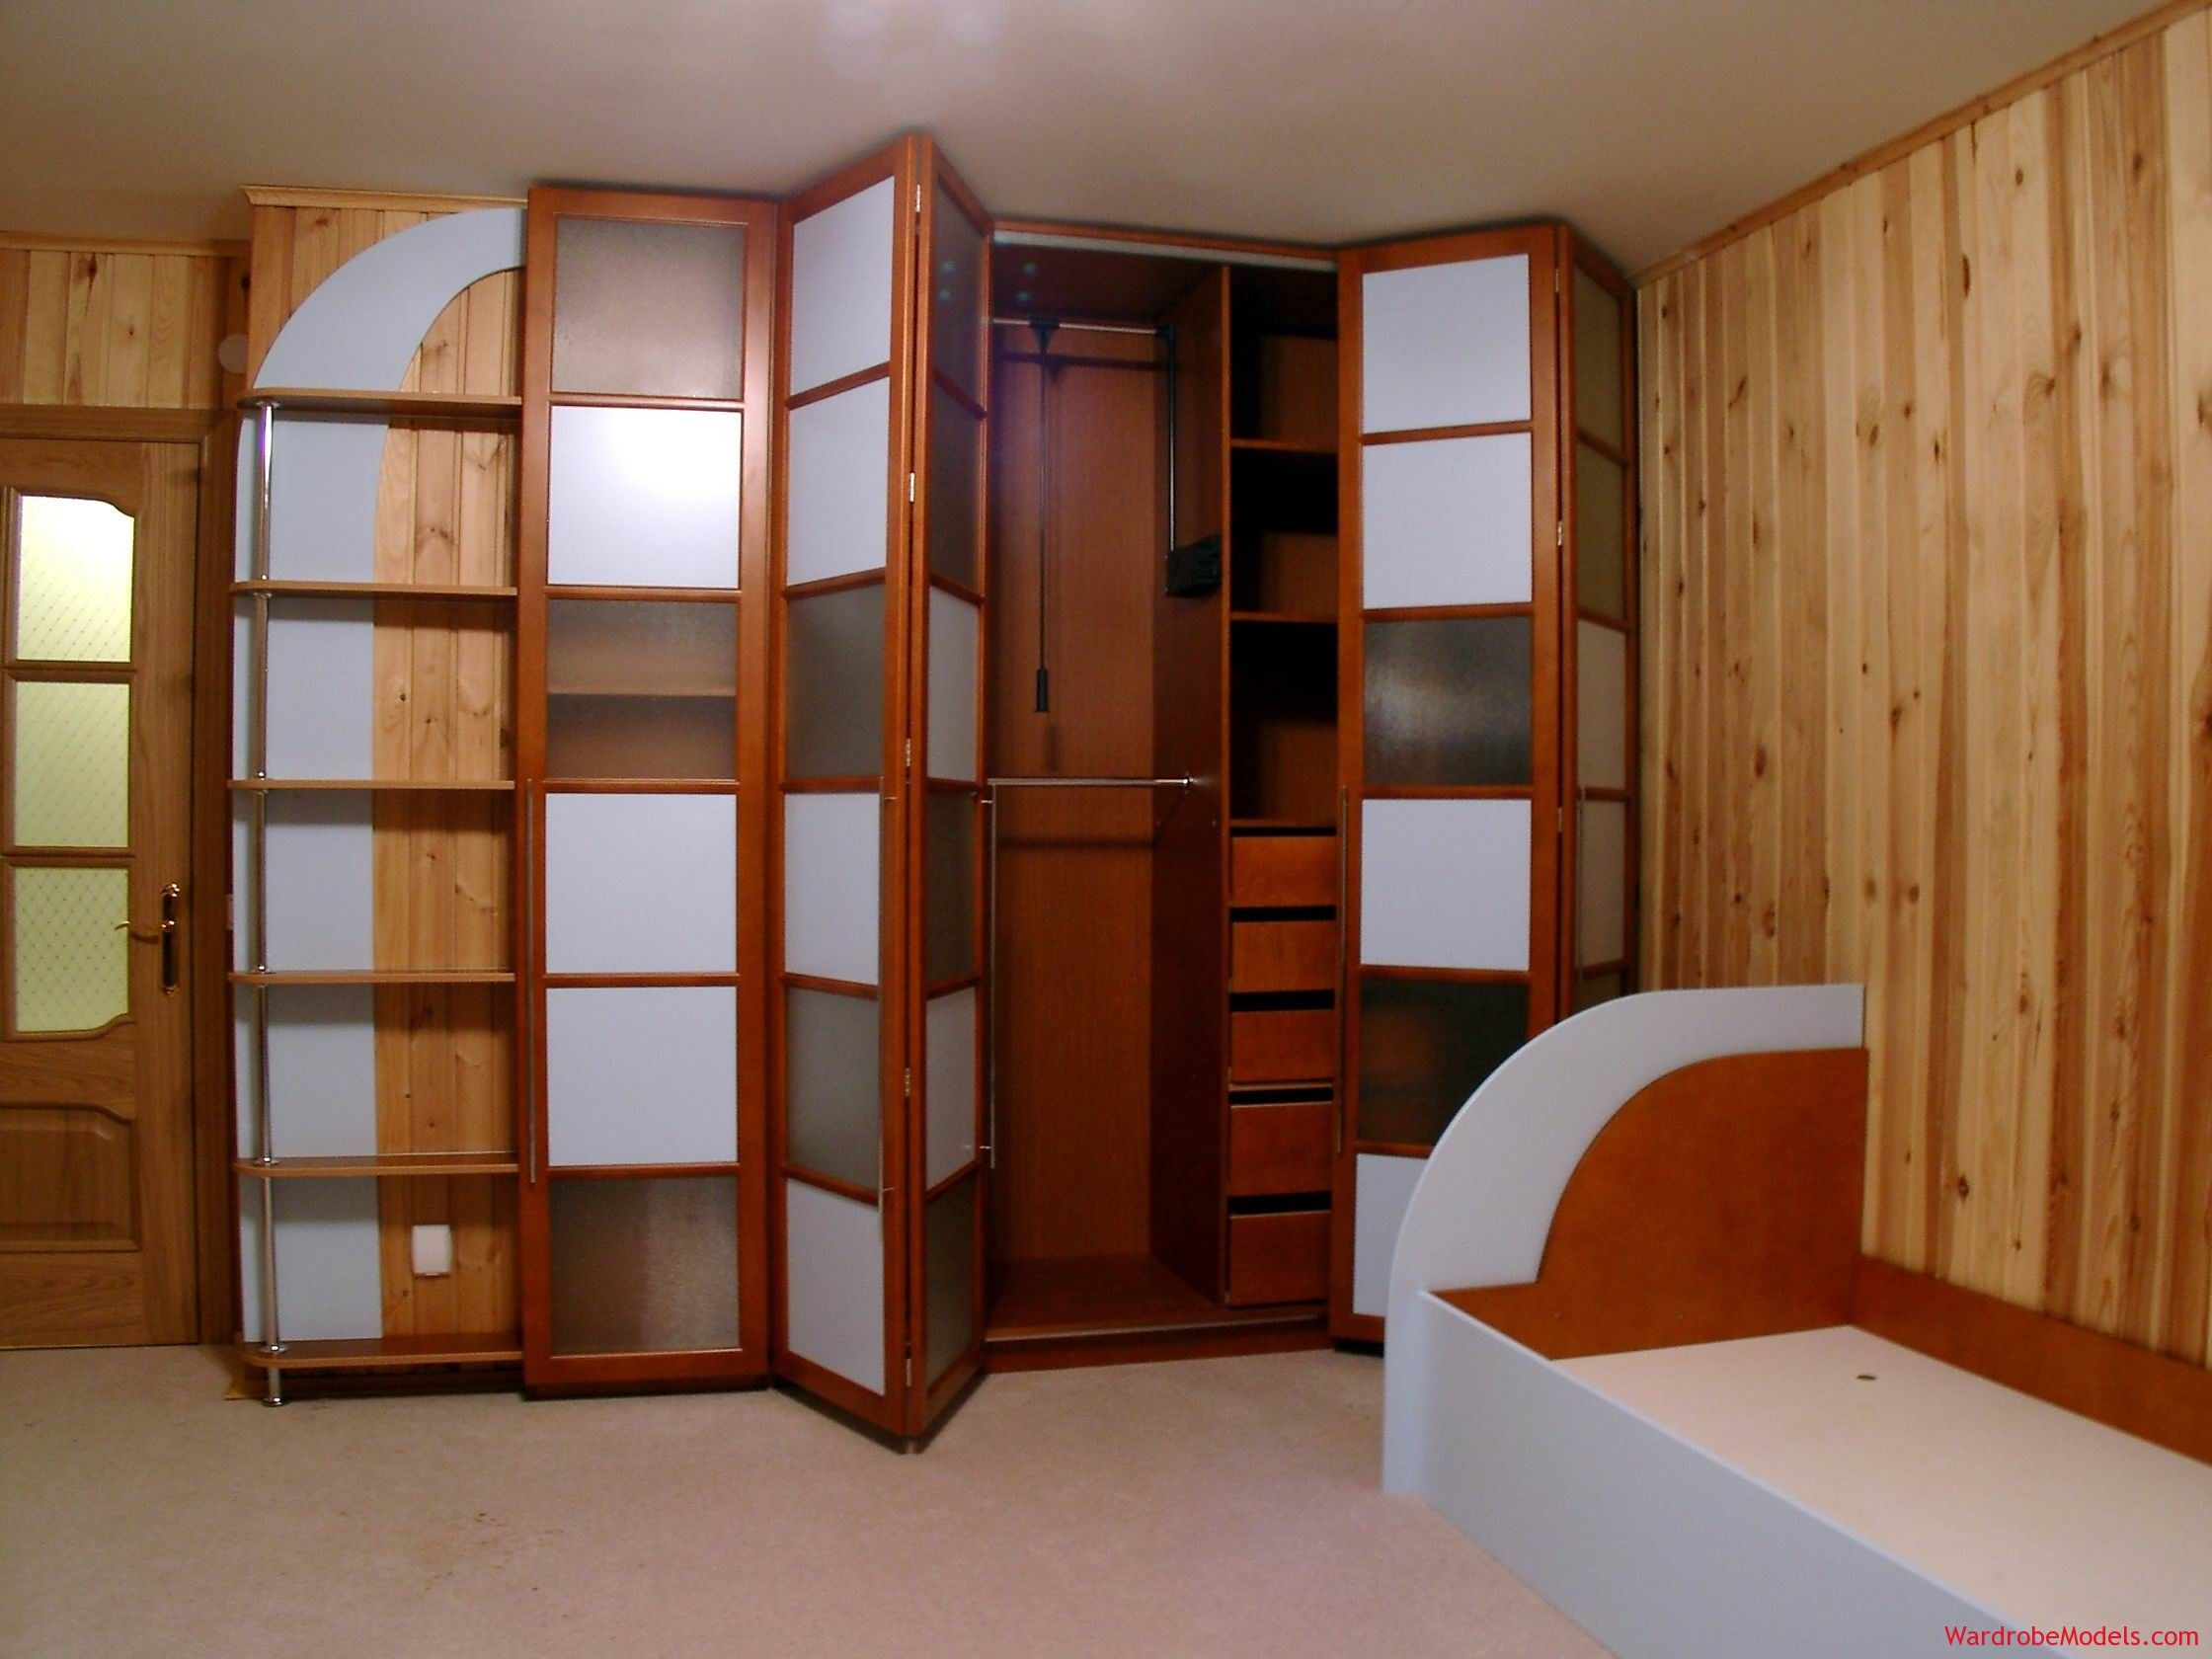 Modern Wooden Wardrobe Designs For Bedroom Modern Architecture Home Design Furniture Storage